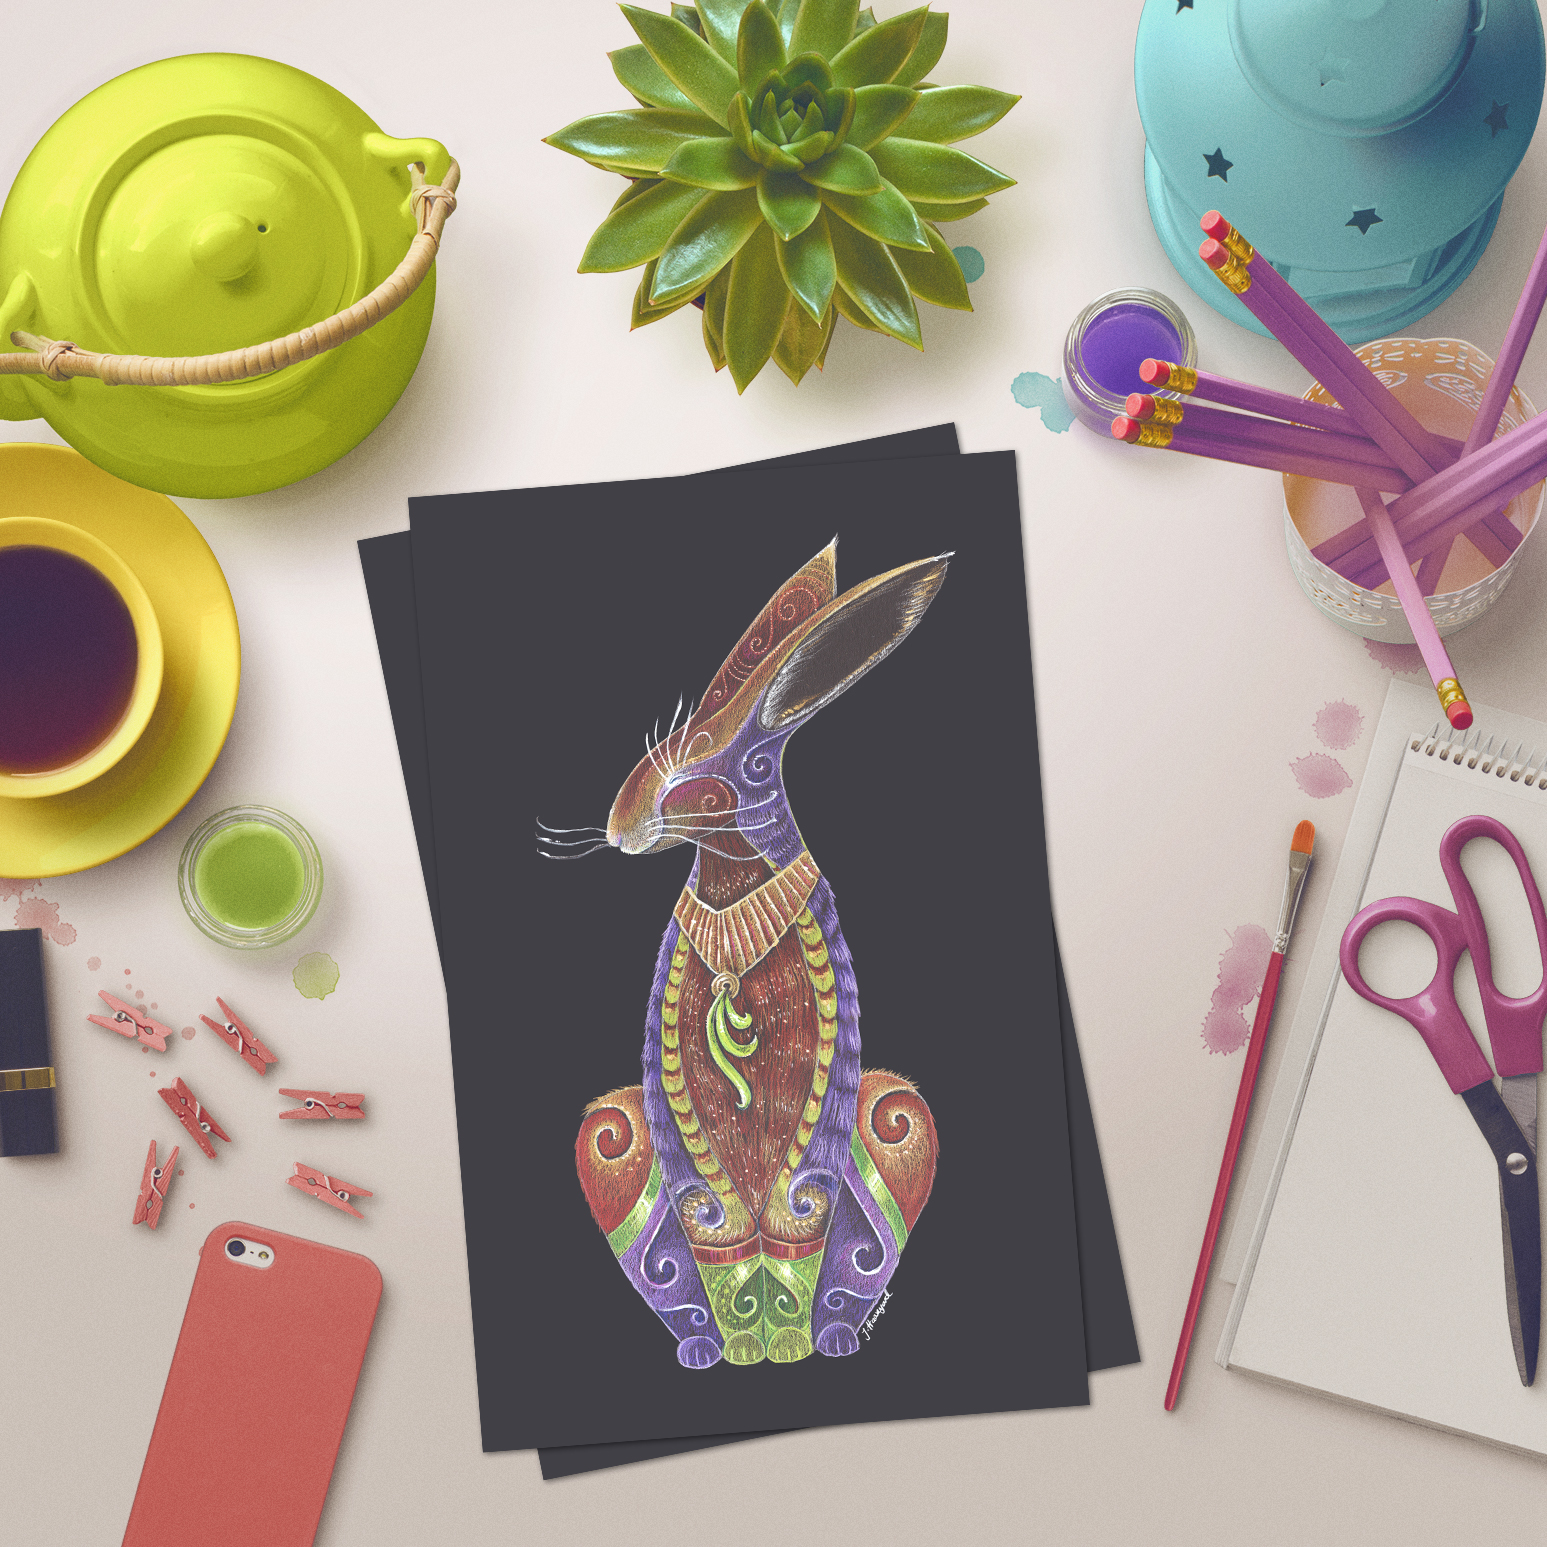 Colourful image of Hare Totem on a desk by Jennifer Hawkyard